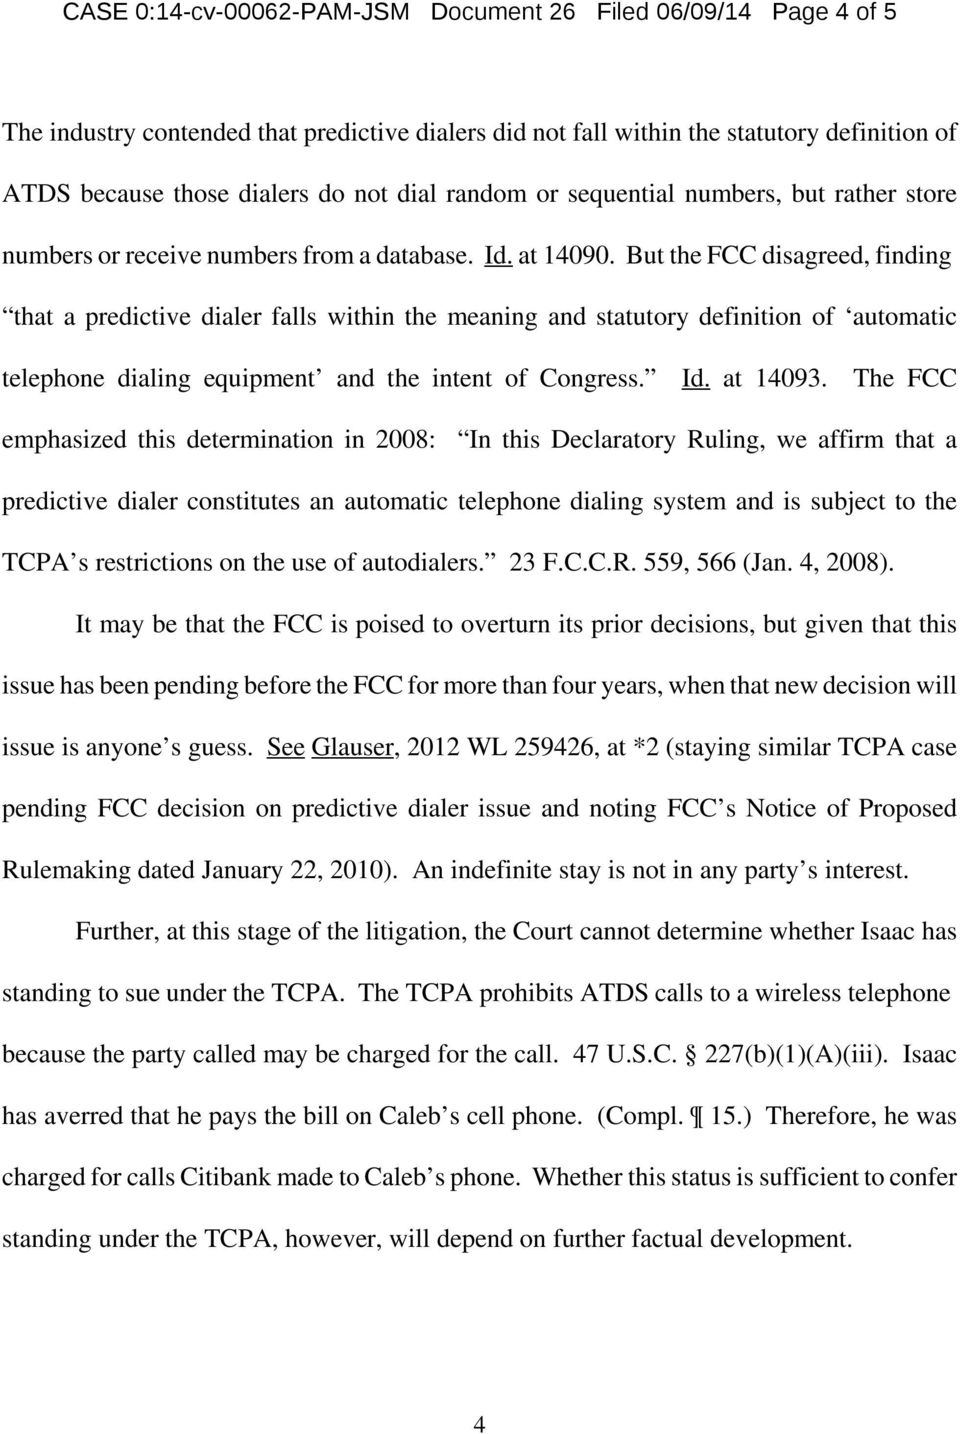 But the FCC disagreed, finding that a predictive dialer falls within the meaning and statutory definition of automatic telephone dialing equipment and the intent of Congress. Id. at 14093.